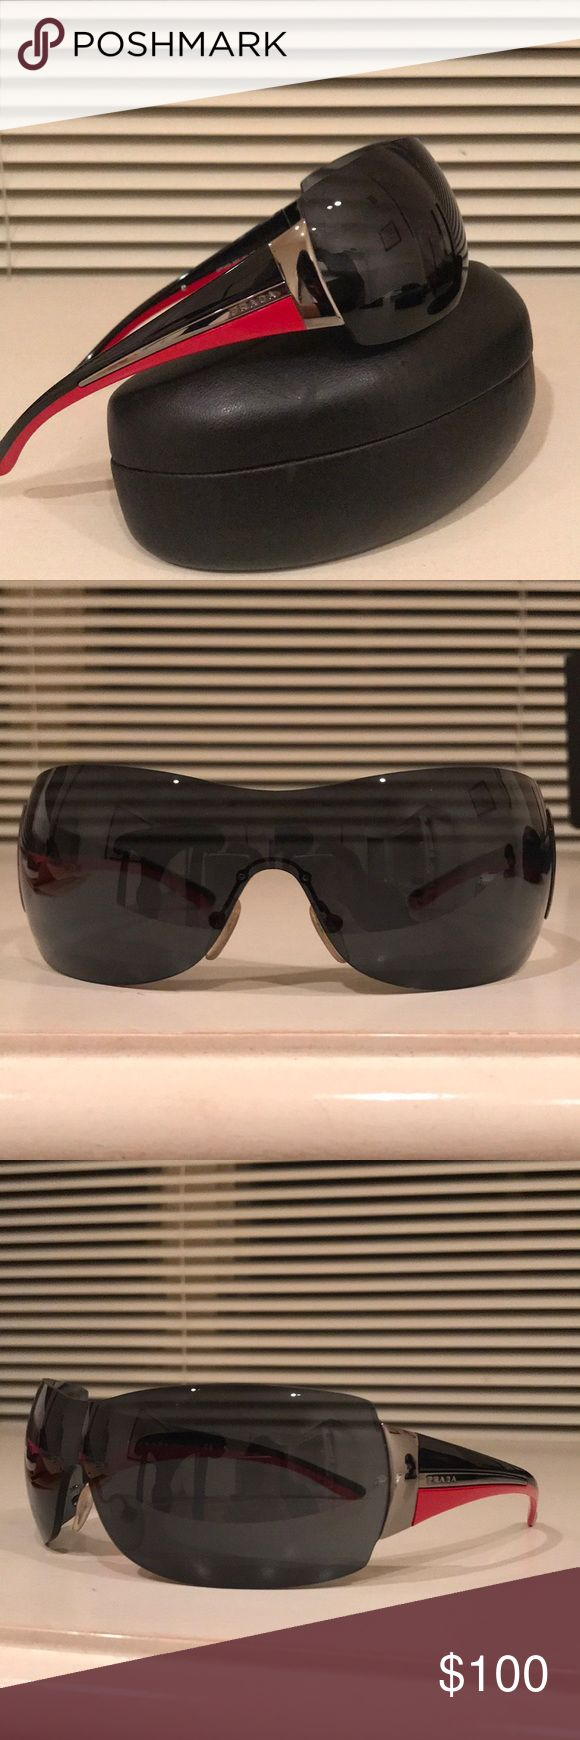 Sport Prada sunglasses Designer Prada sunglasses in mint condition (hardly worn) with original Prada leather case and cleaning cloth ✨  UV protection, dark lenses, protects peripheral vision as the lenses bend with your face.  Awesome pair of shades  Prada Accessories Sunglasses